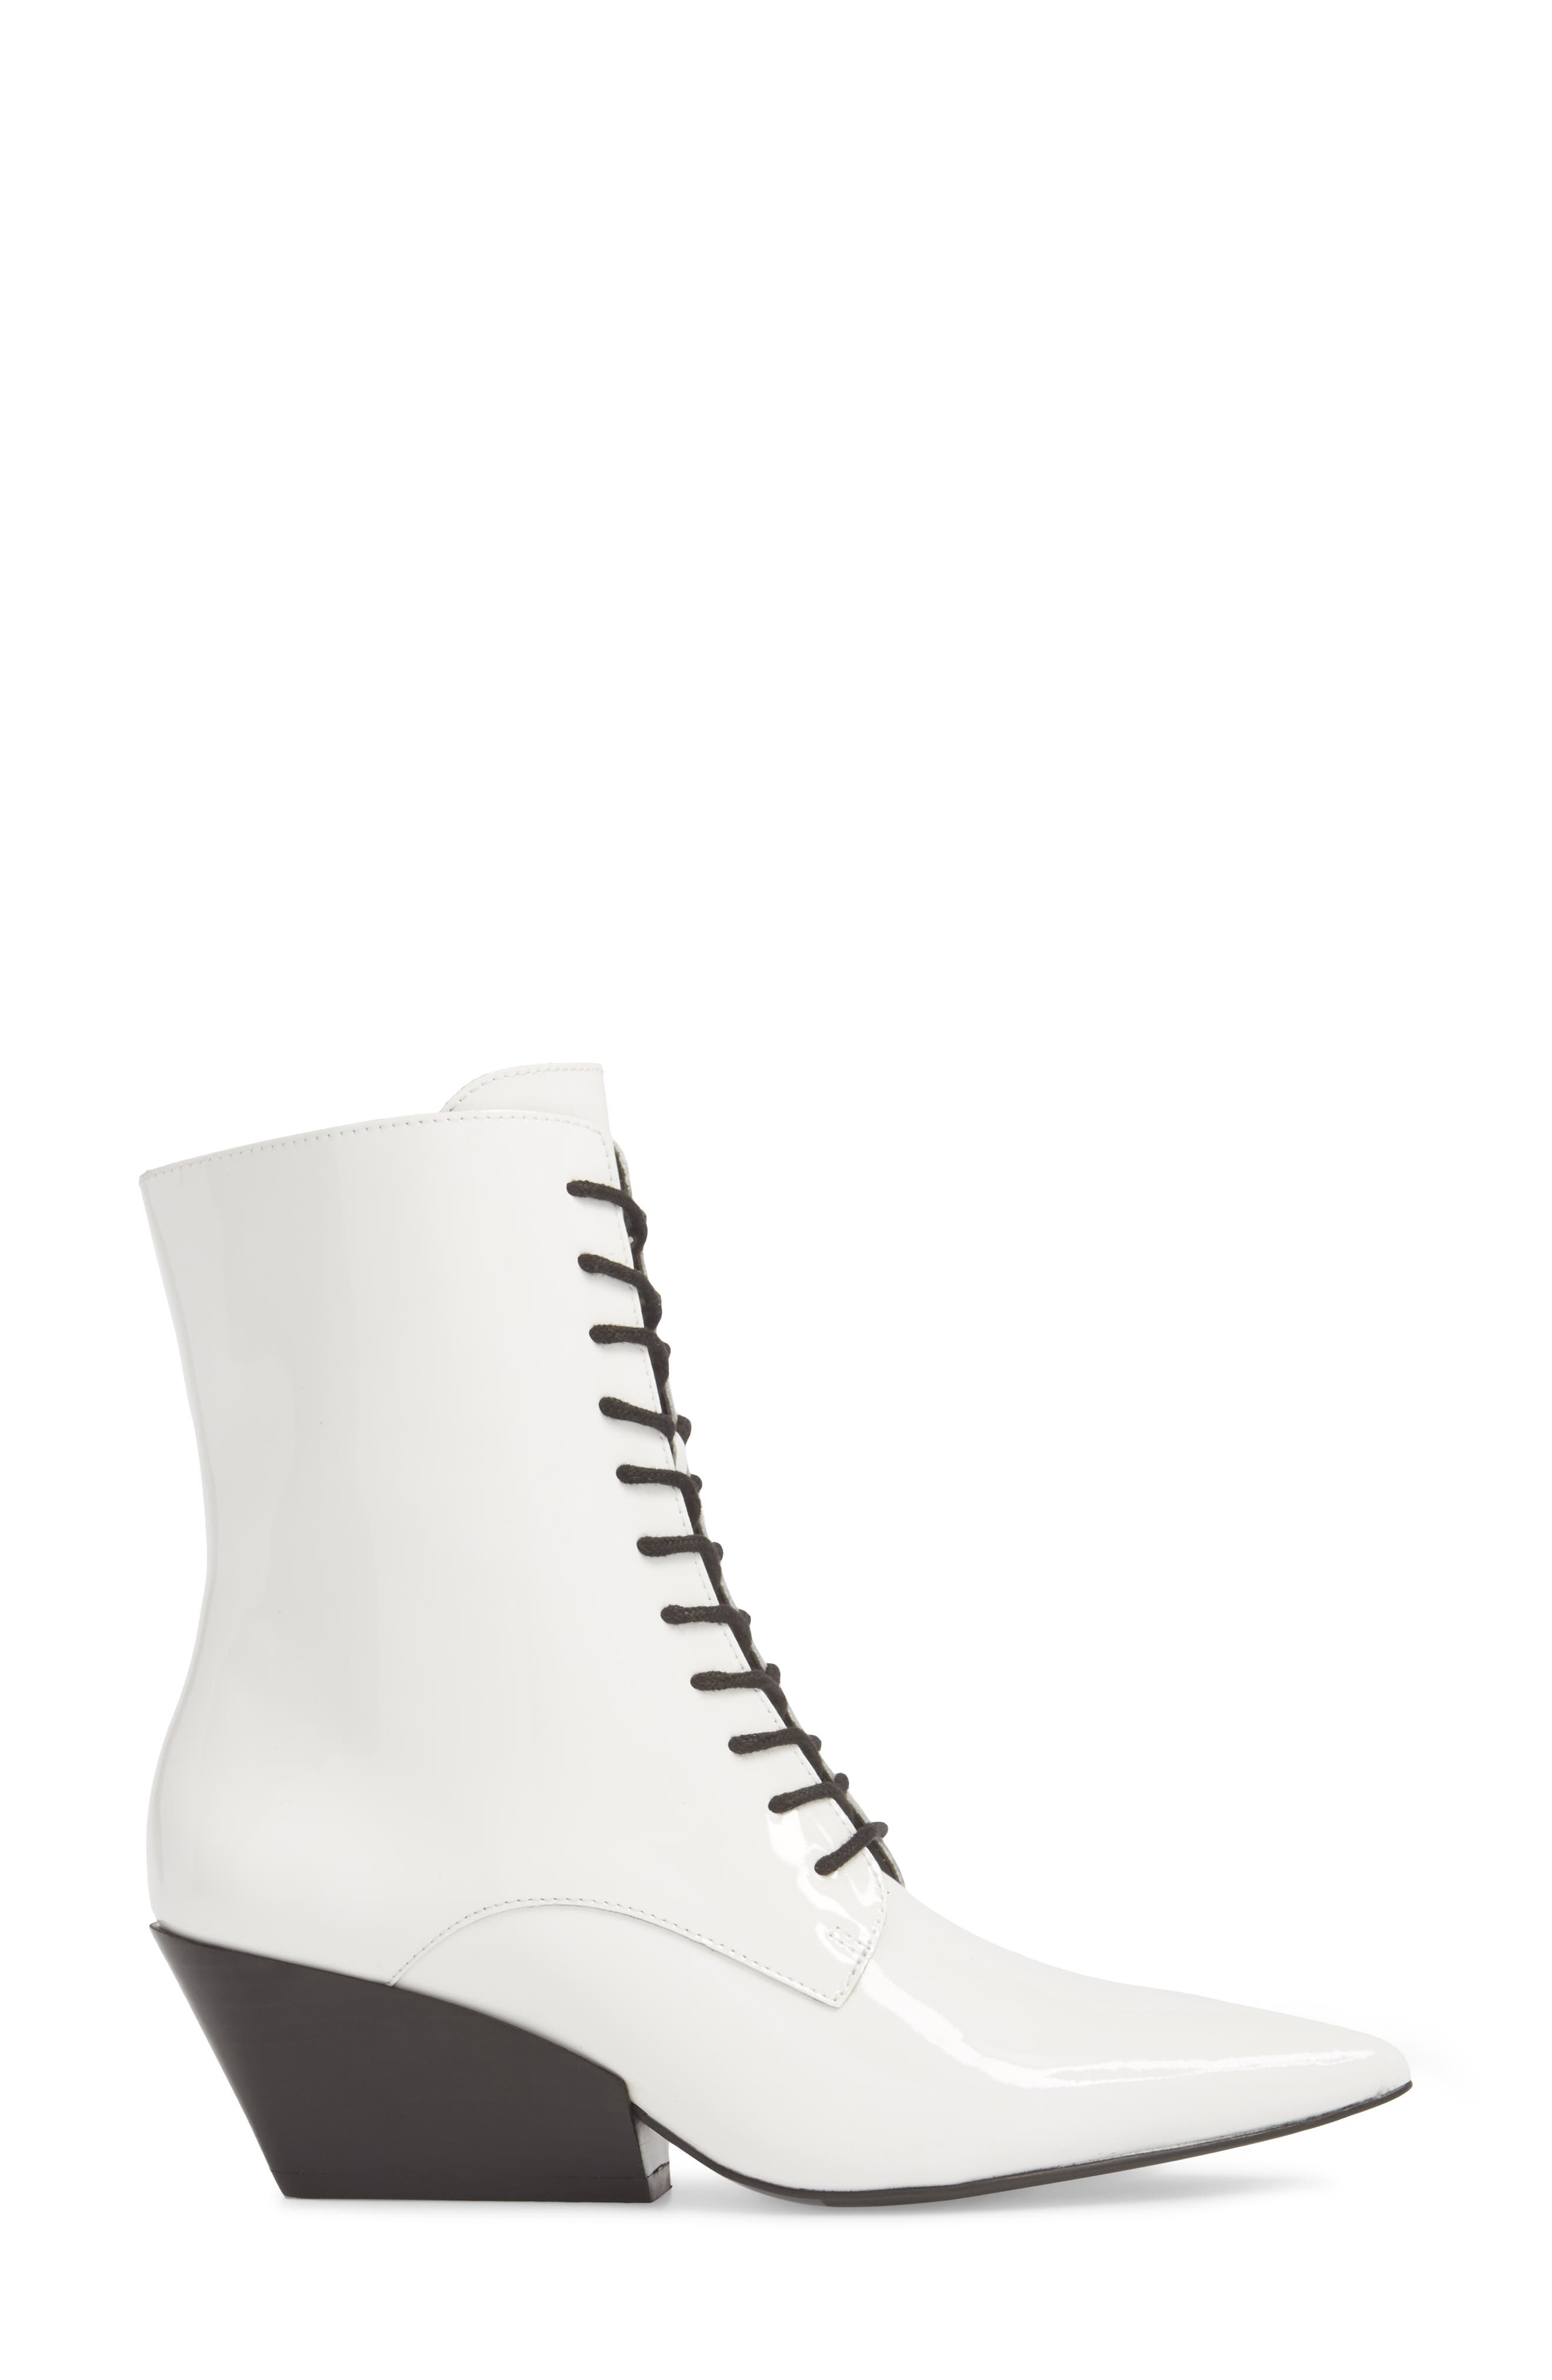 Faith Pointy Toe Laced Bootie,                             Alternate thumbnail 5, color,                             White Patent